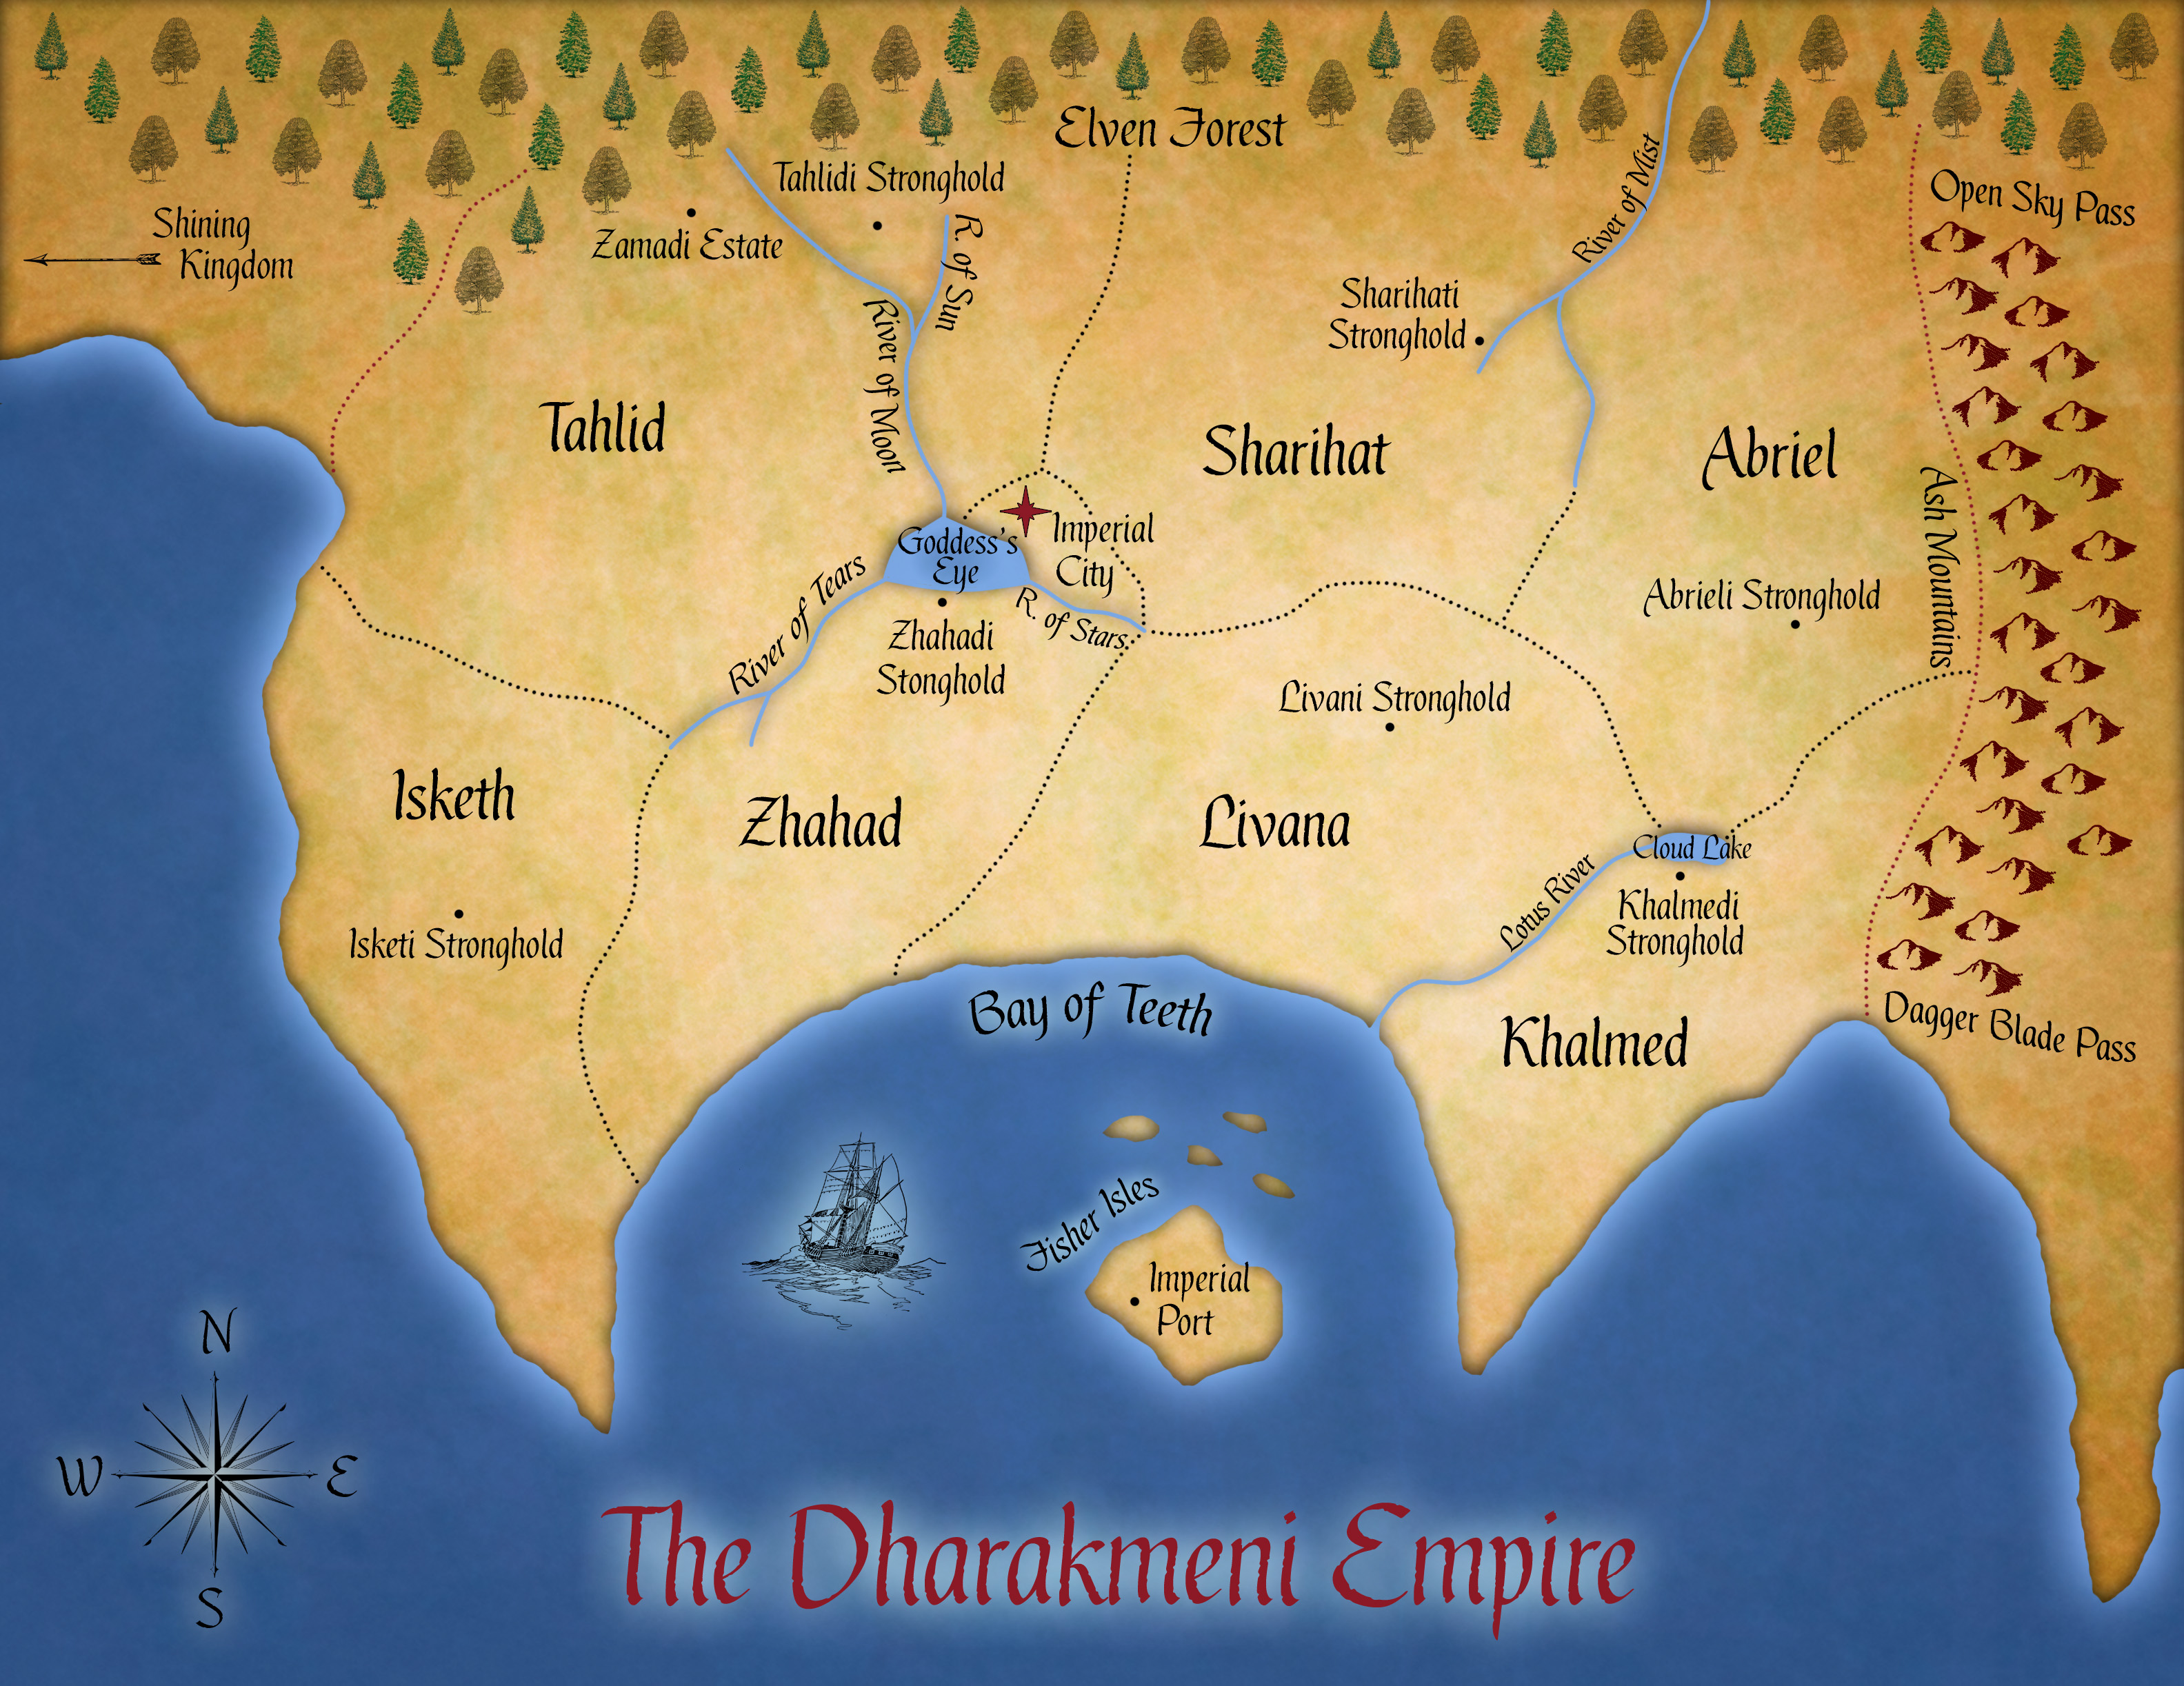 Dharakmeni Empire map